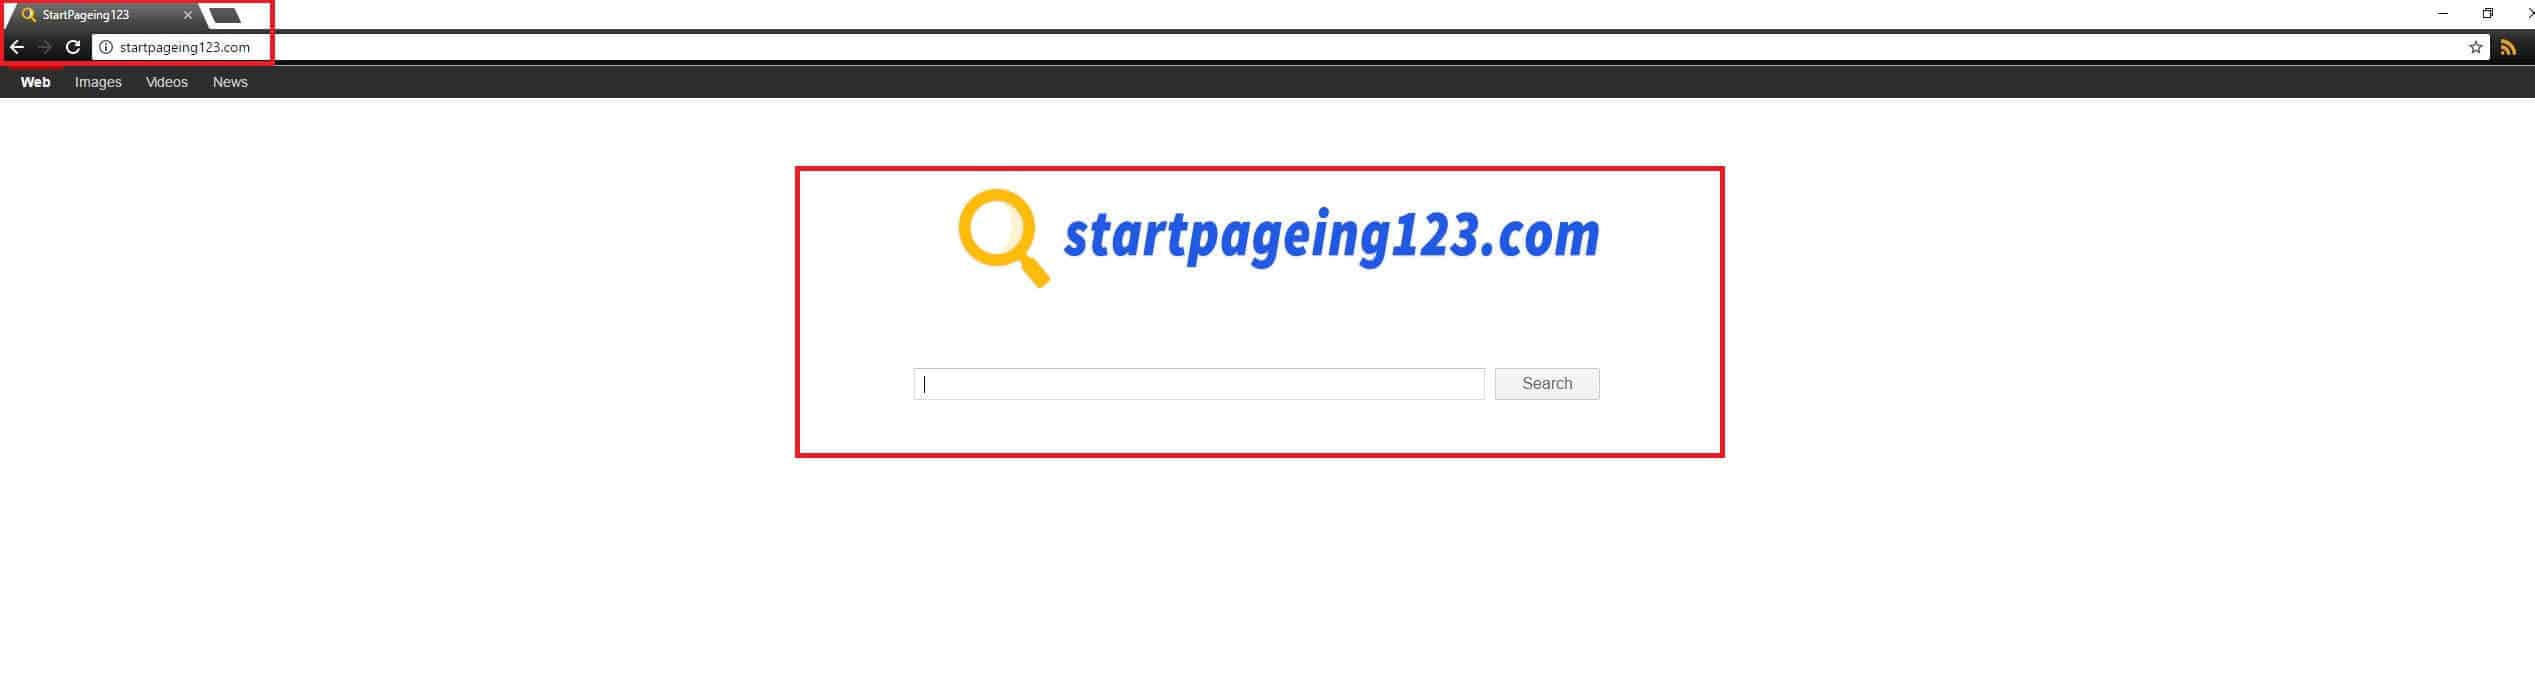 Startpageing 123 Browser Redirect